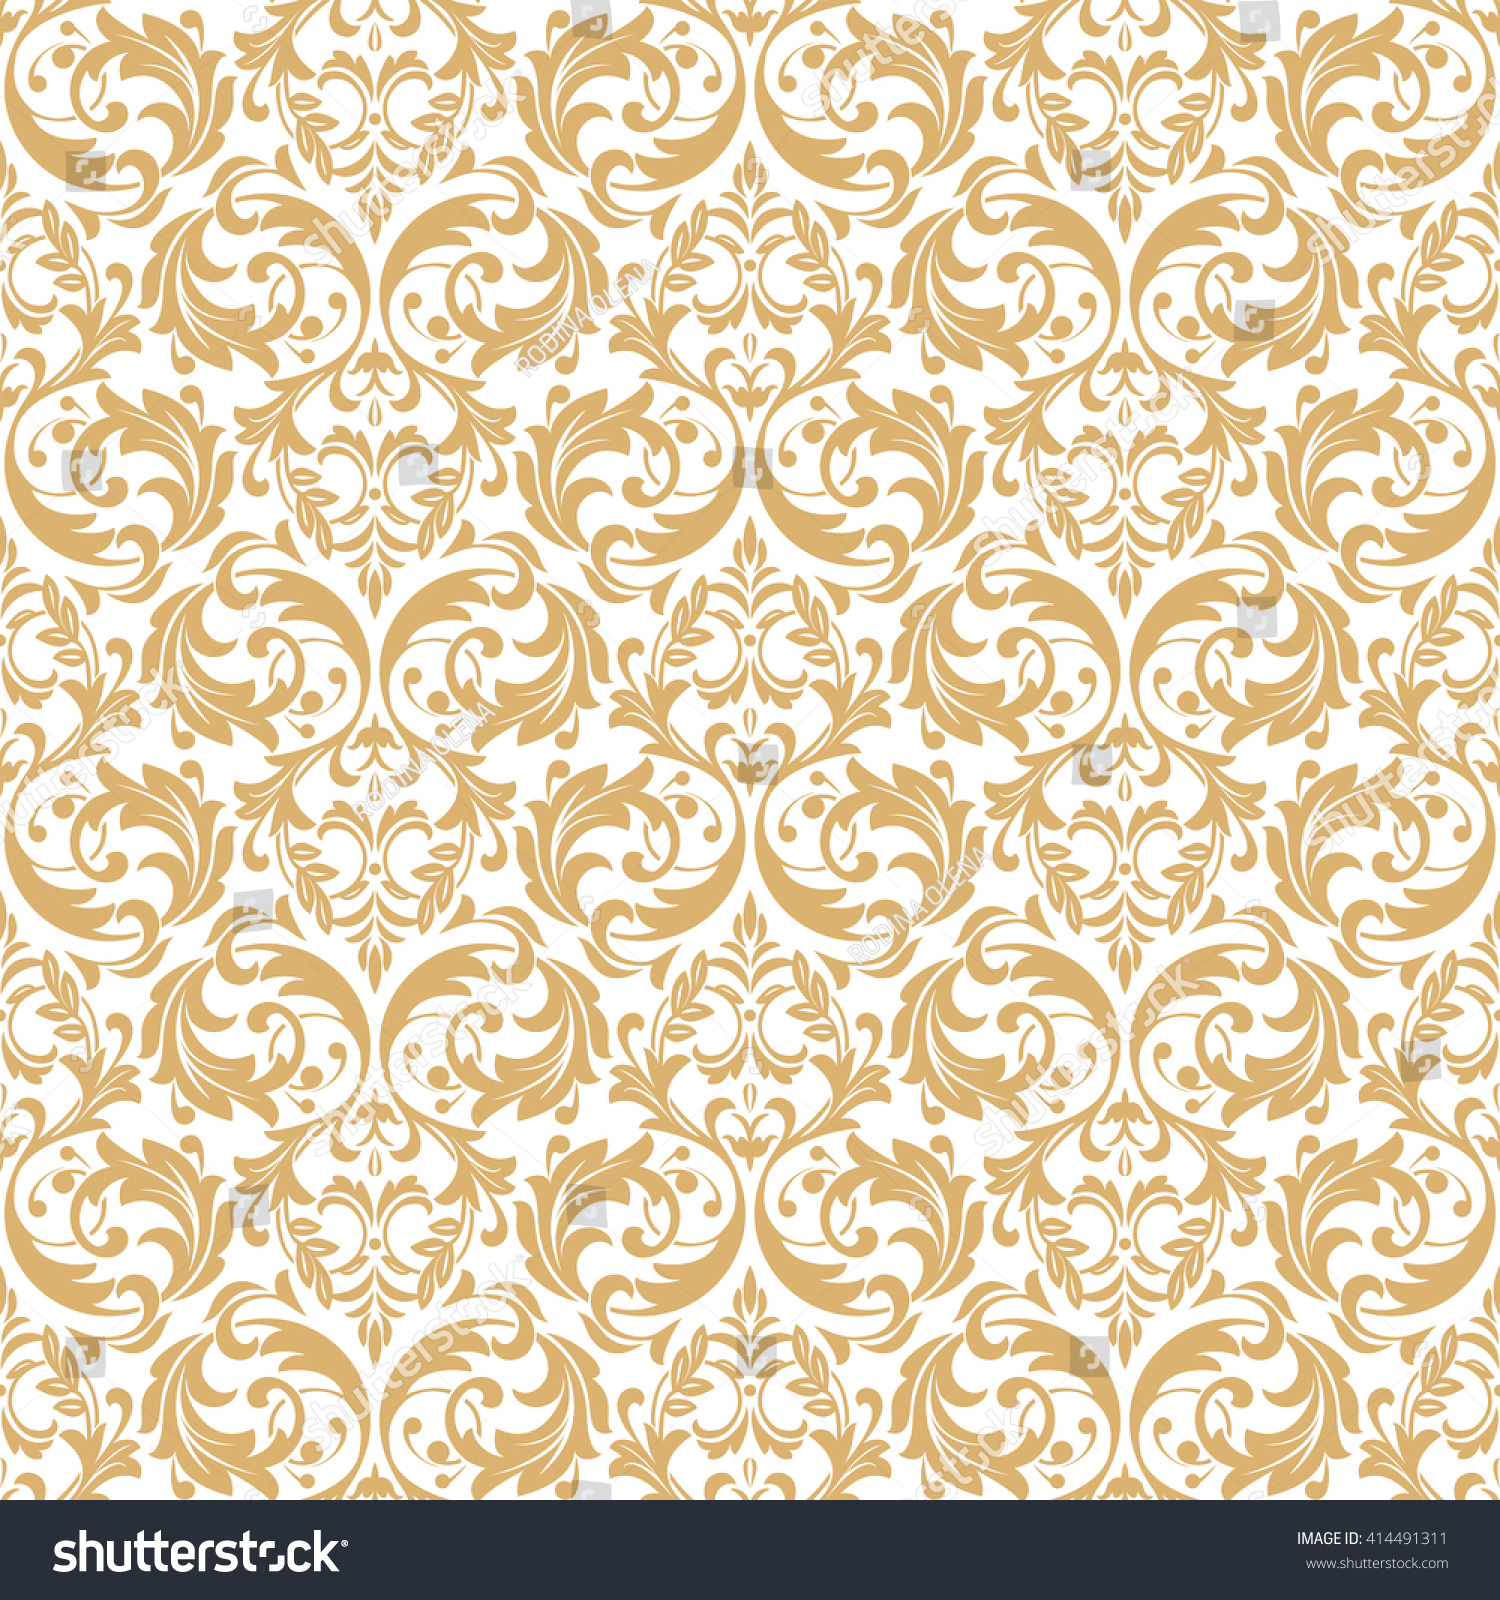 of White And Gold Floral Wallpaper SC